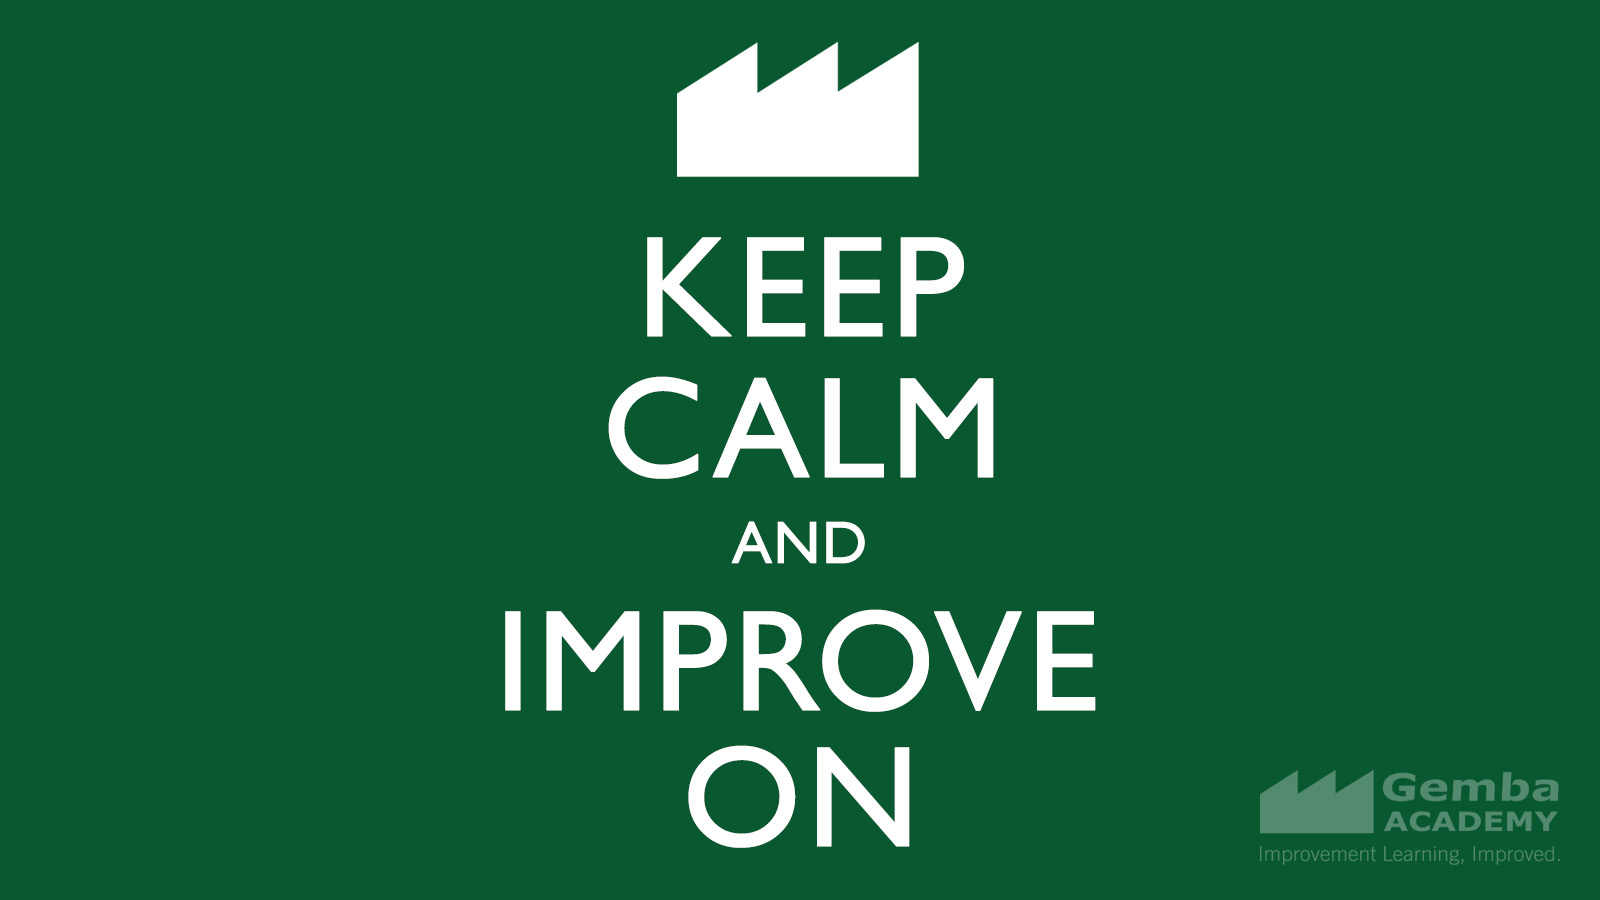 Cool Quotes Images Wallpaper Keep Calm Amp Improve On Free Desktop Wallpaper Gemba